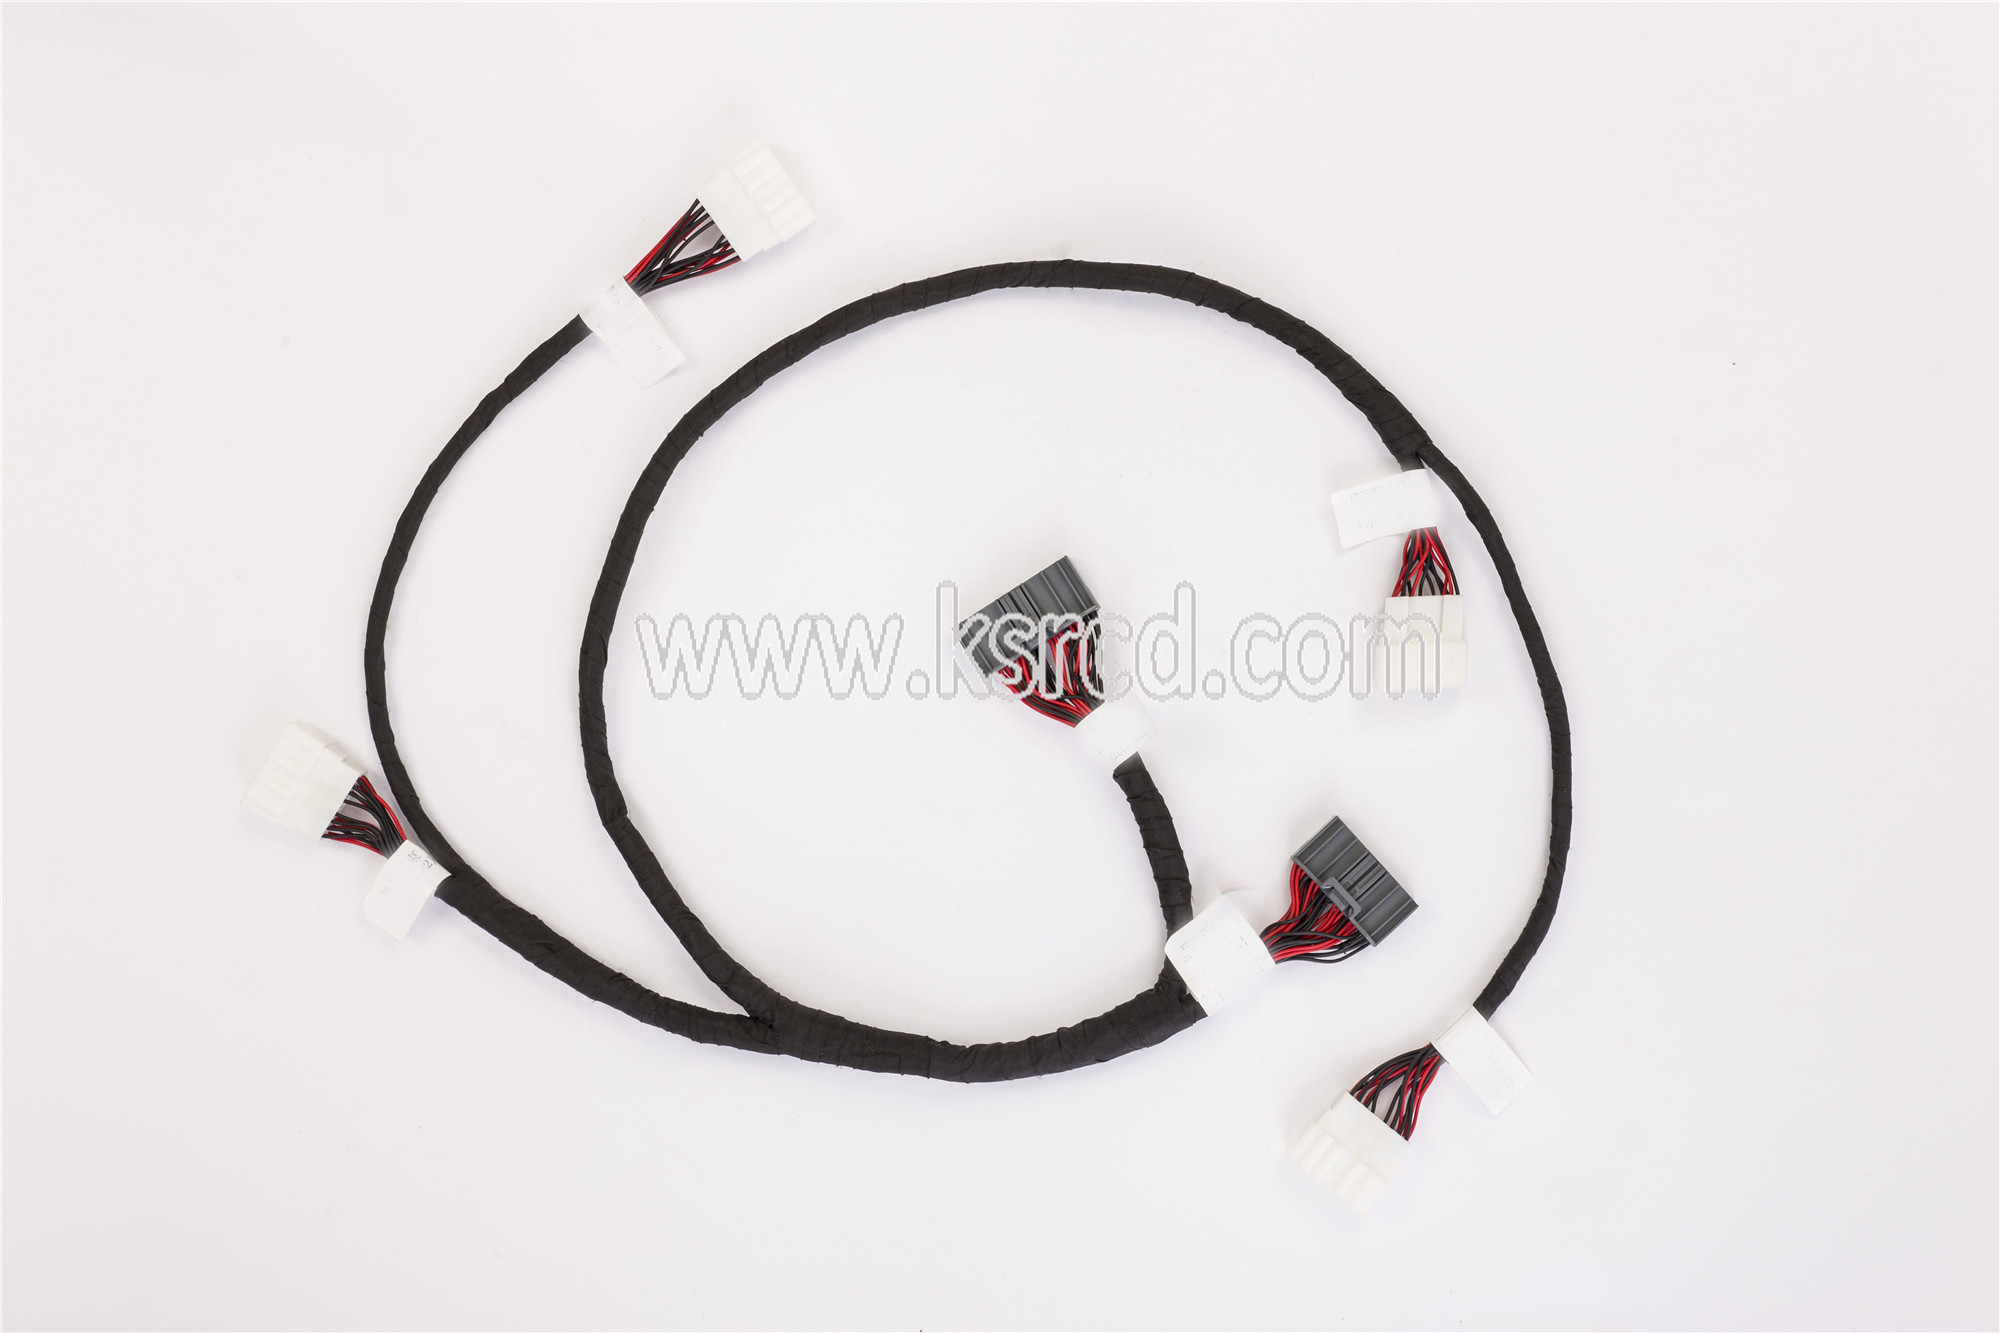 Customized High Quality Auto Wire Harness For Car